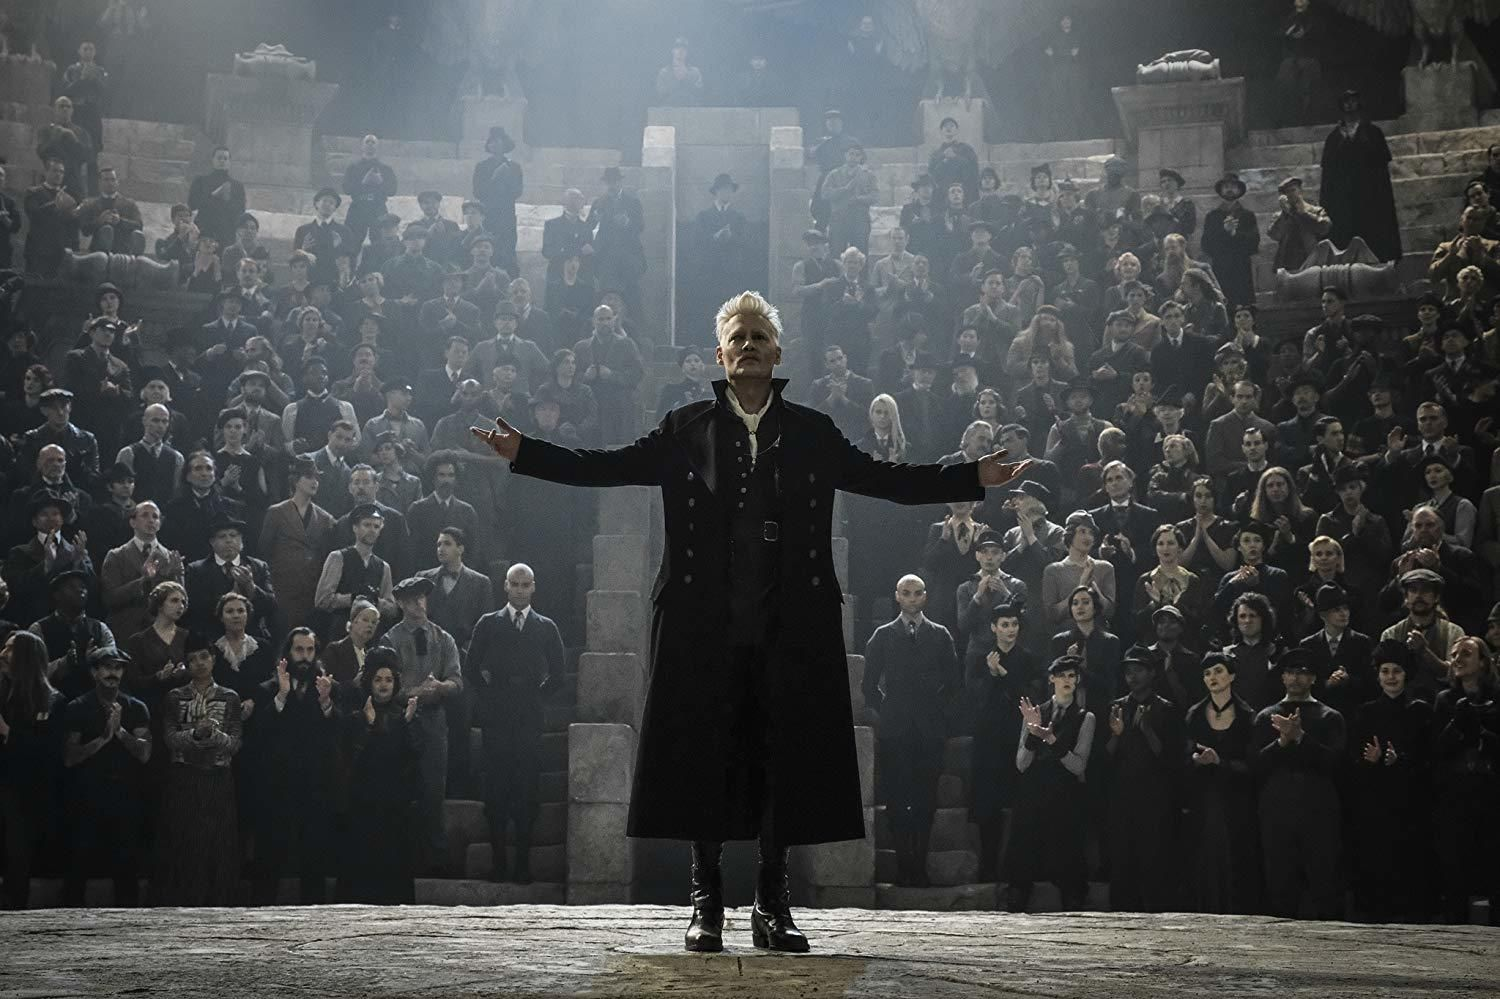 Grindelwald giving the Greater Good speech